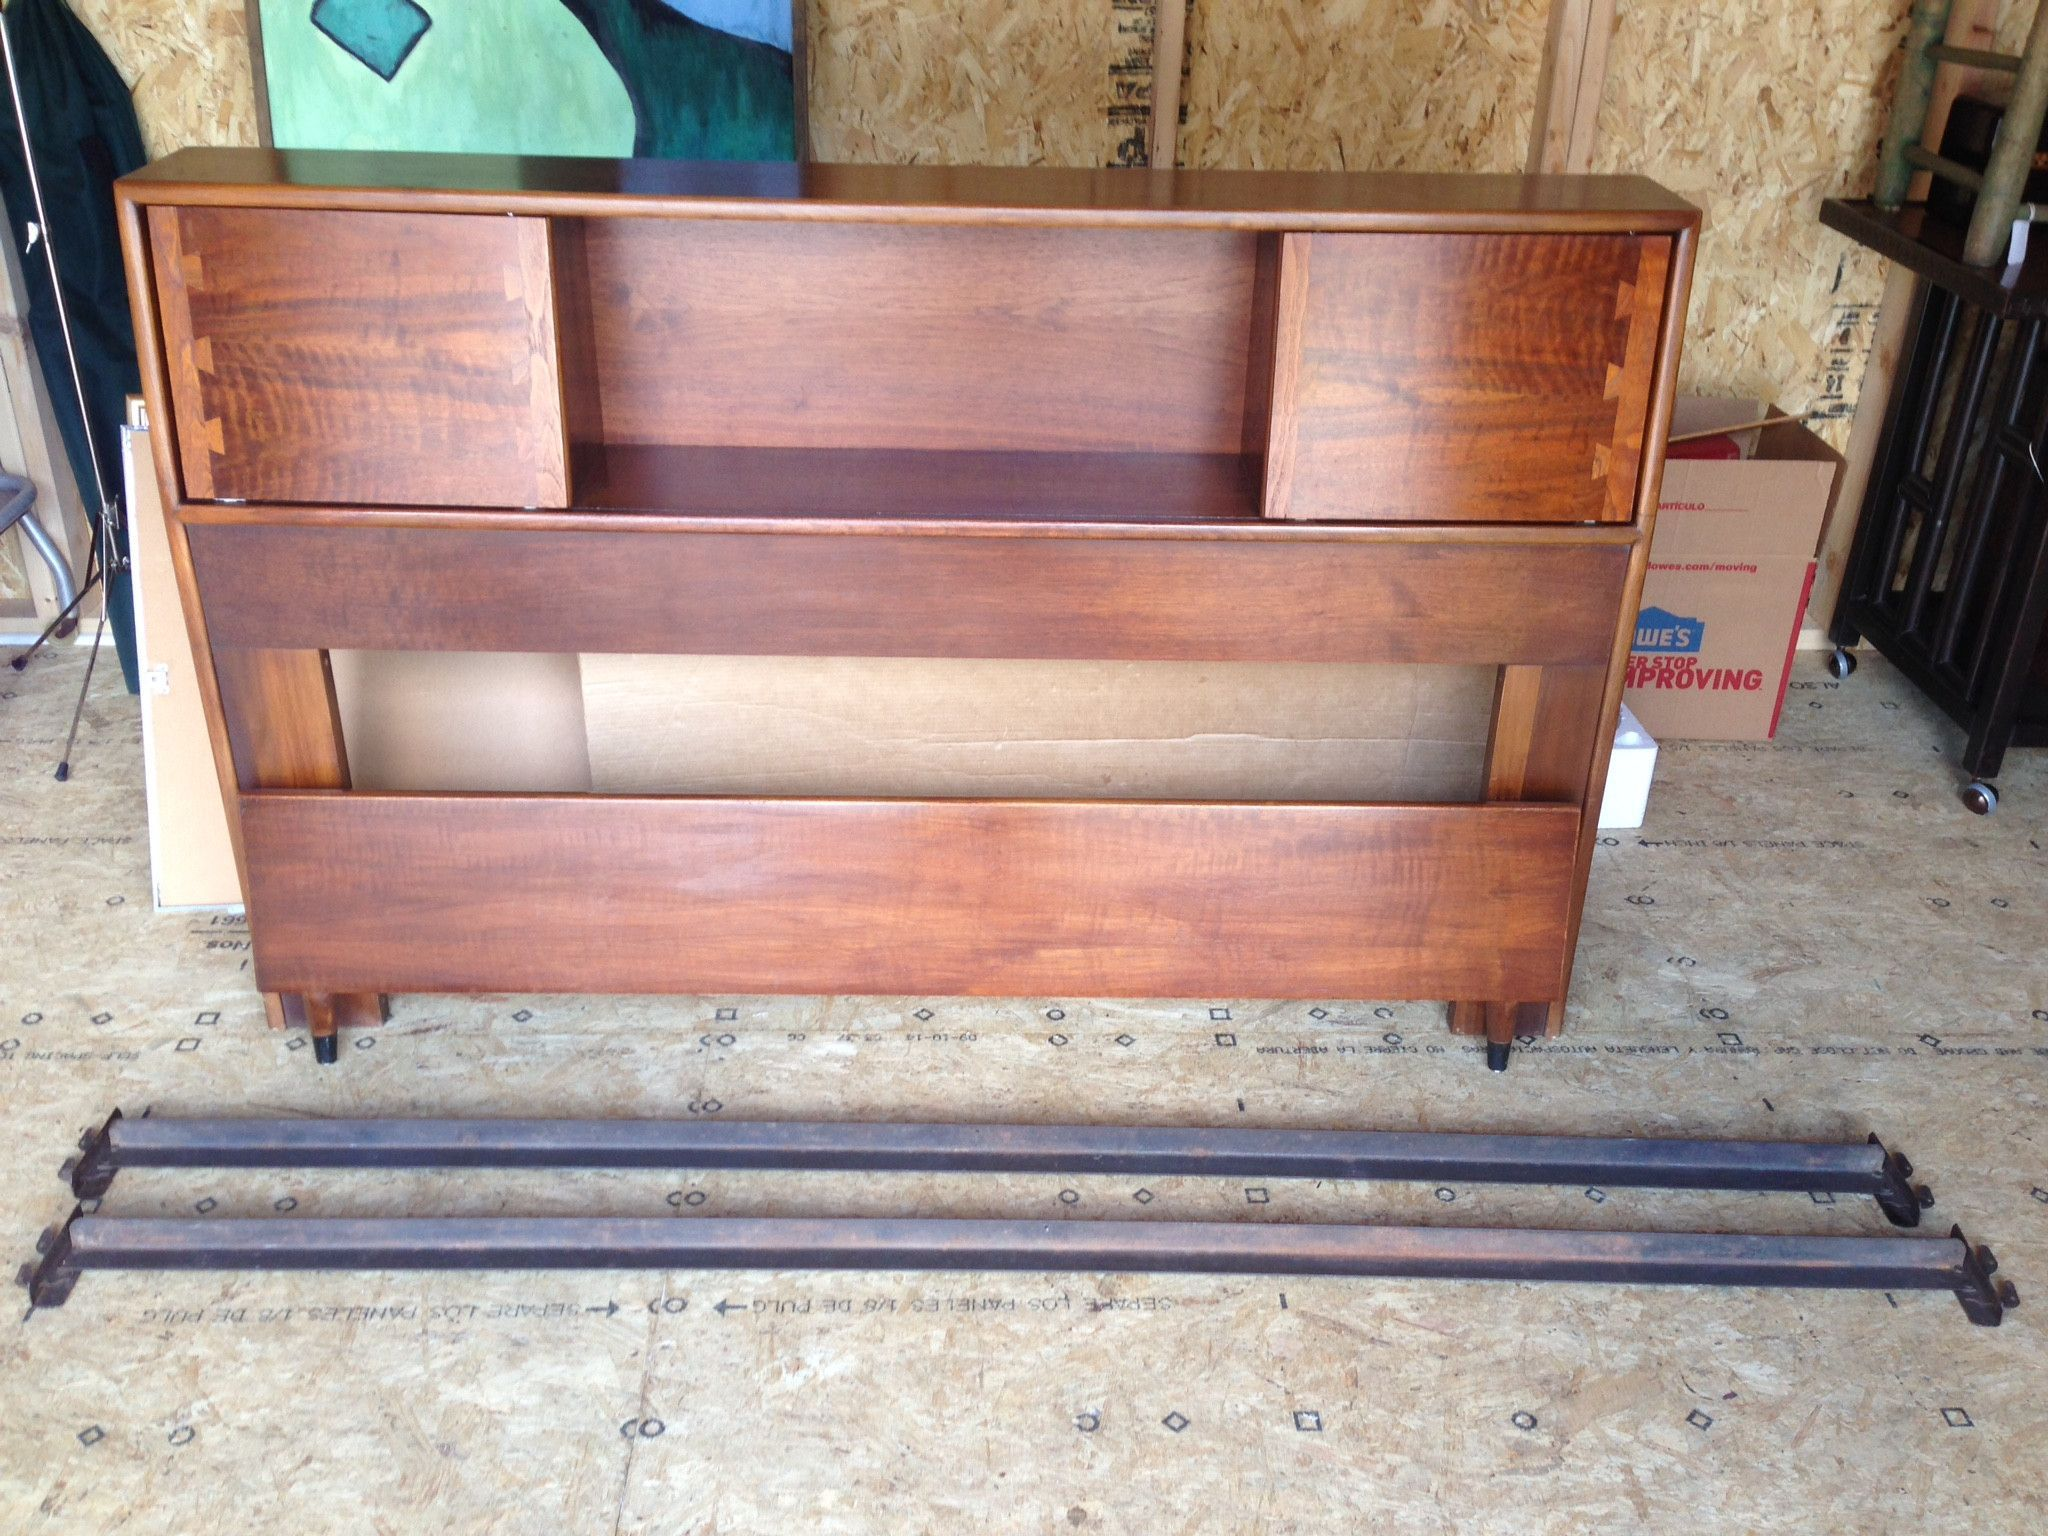 Mid Century Lane Acclaim Bookcase Headboard Bed Full Size With Footboard And Rails Bookcase Headboard Bookcase Headboard